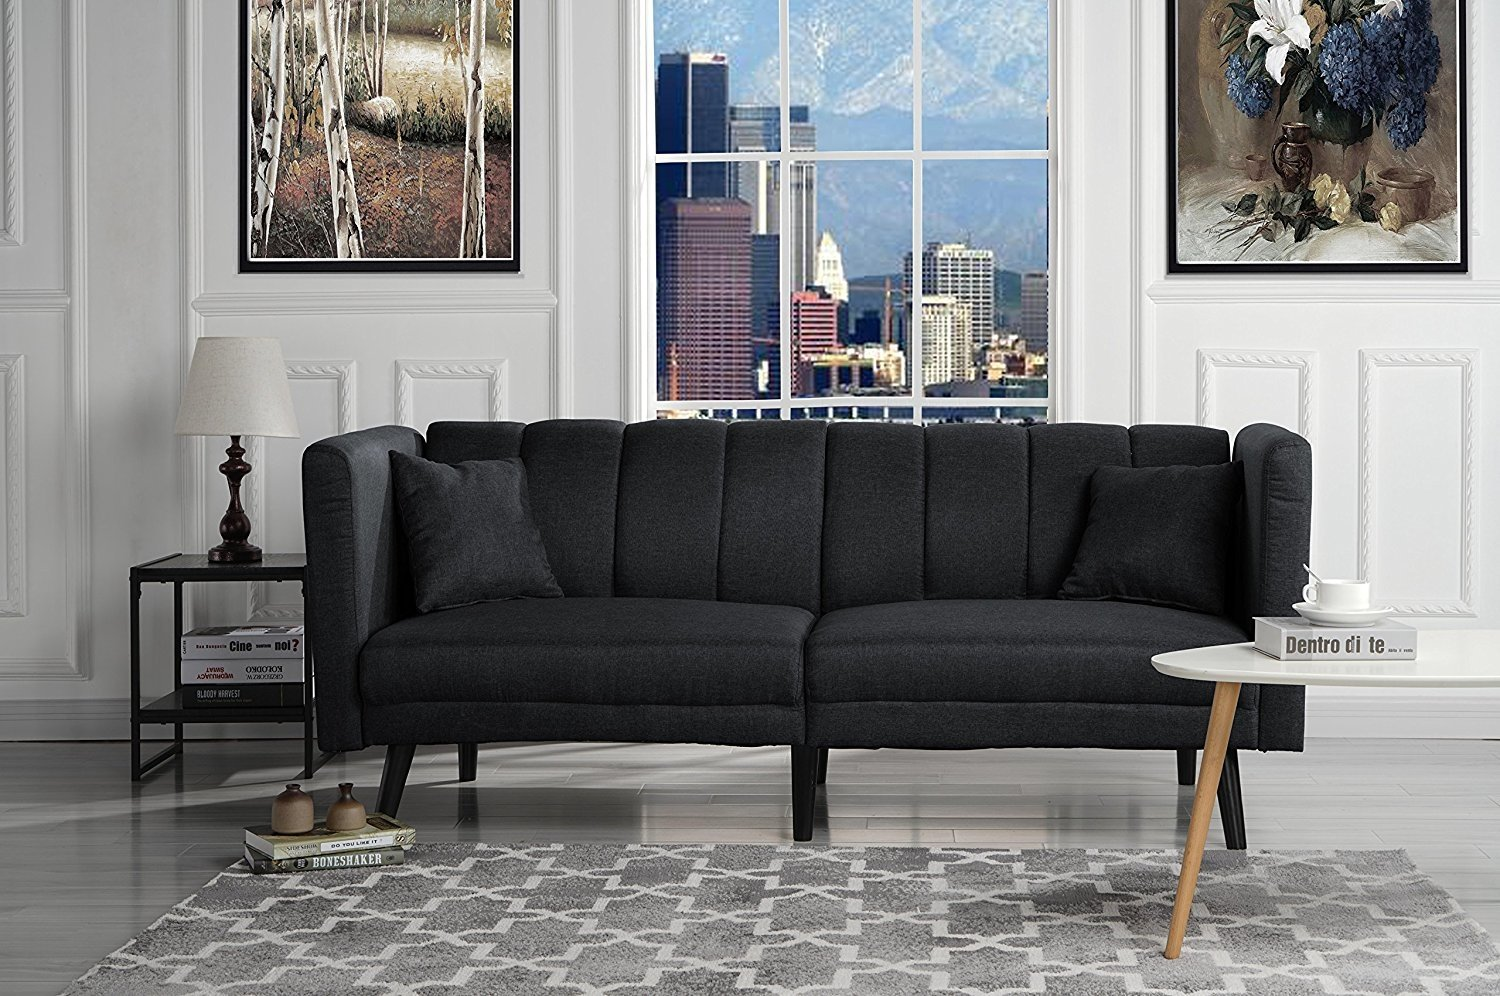 Details about modern furniture plush sofa tufted fabric living room sleeper futon black